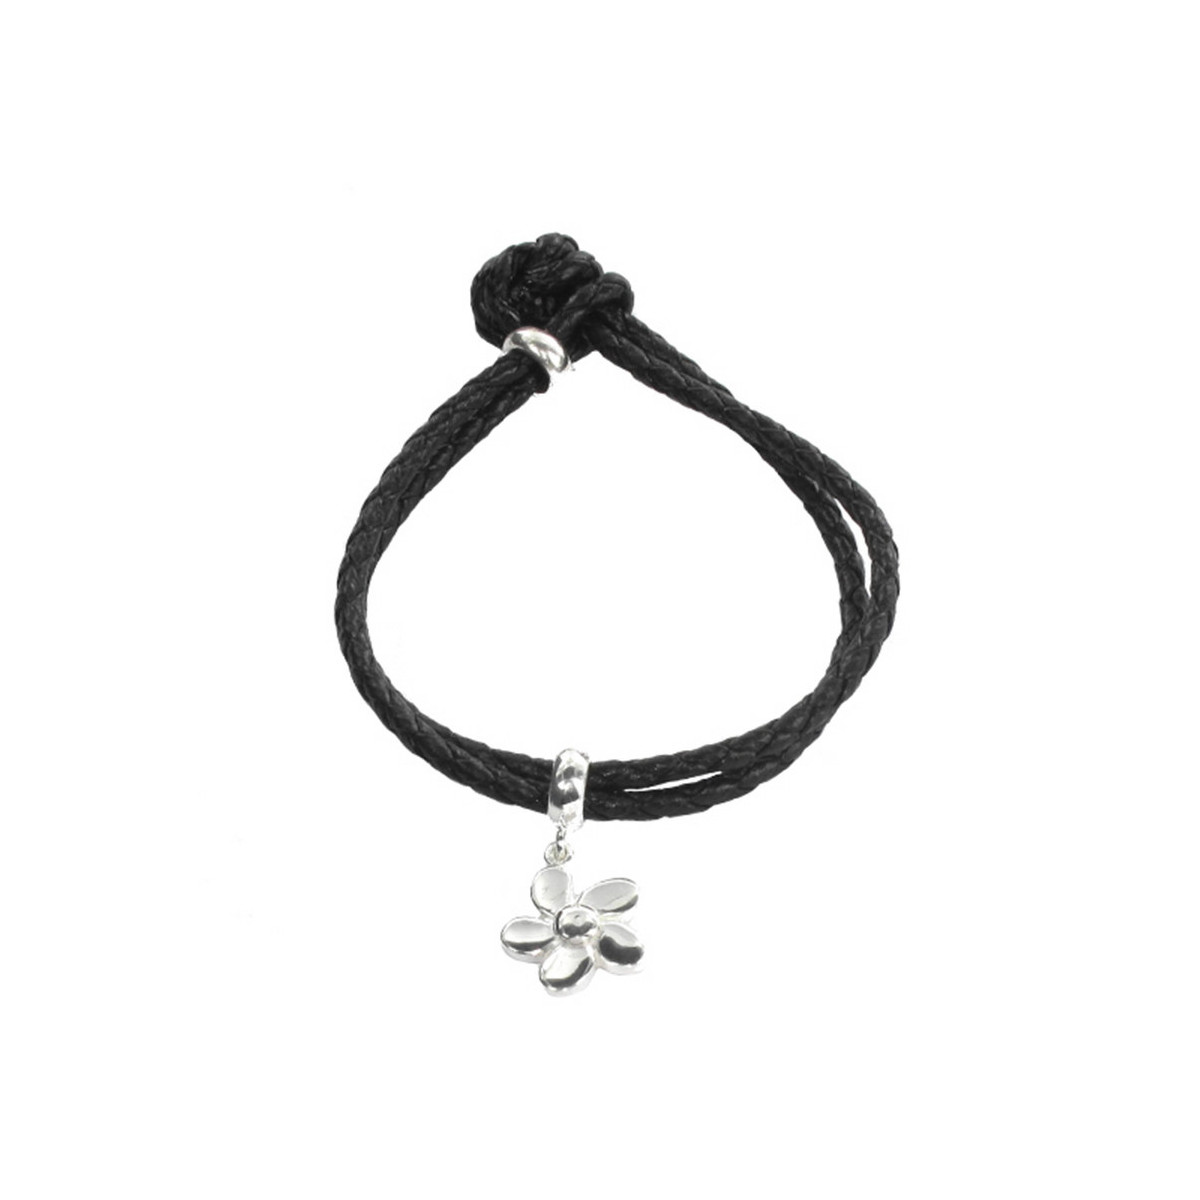 LEATHER BRACELET WITH SILVER